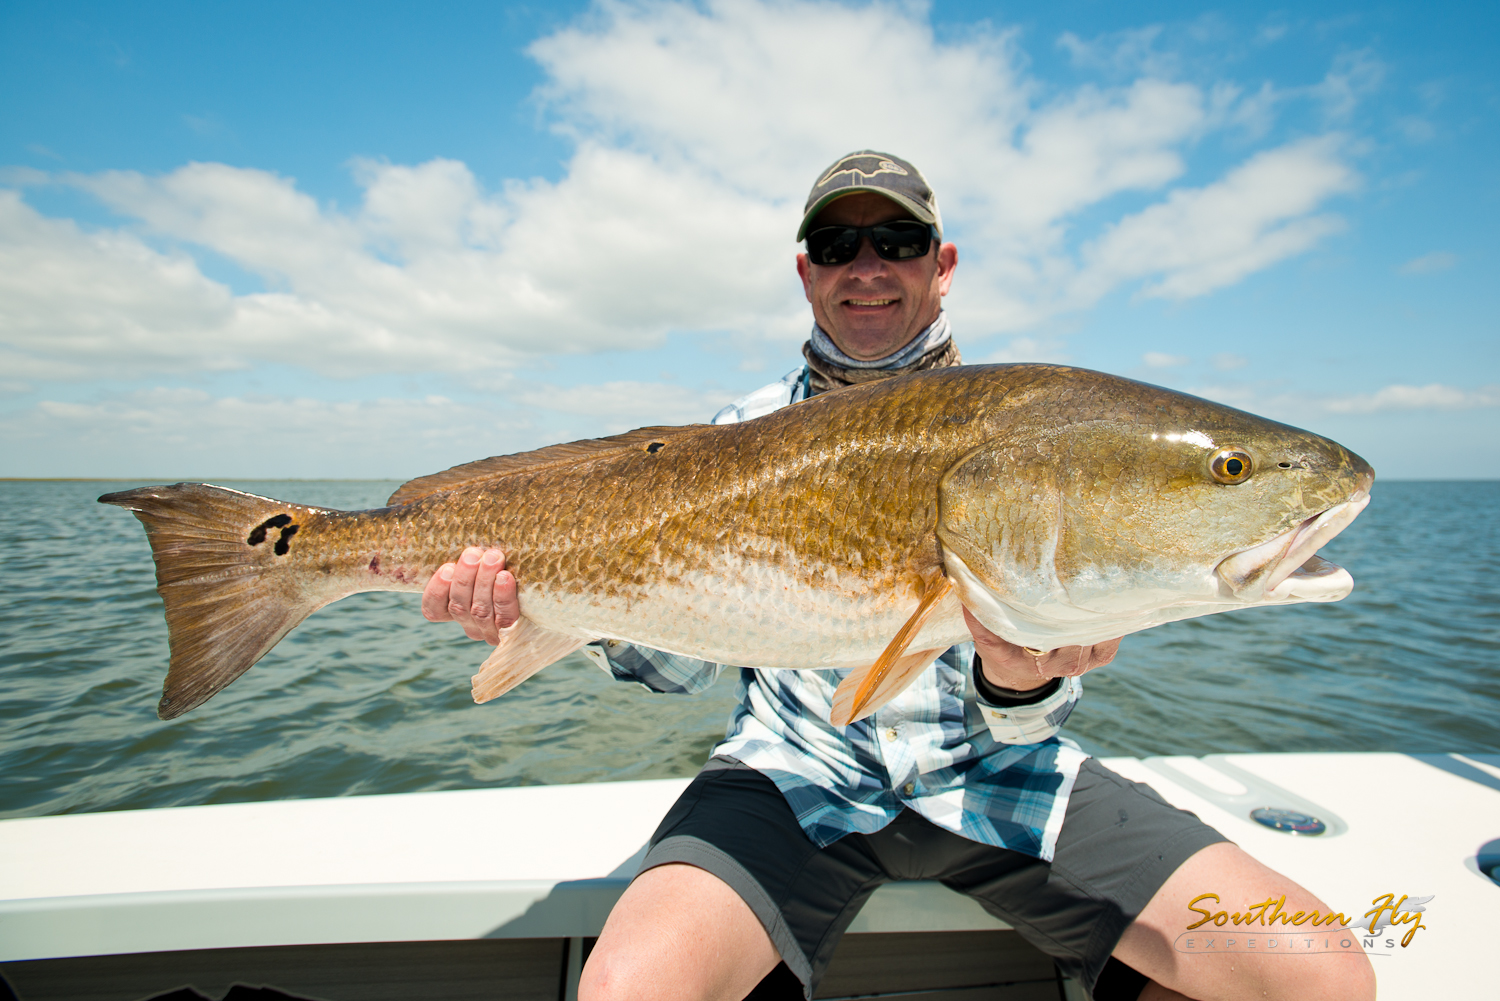 Top Fly Fishing Guide for Redfish New Orleans Southern Fly Expeditions